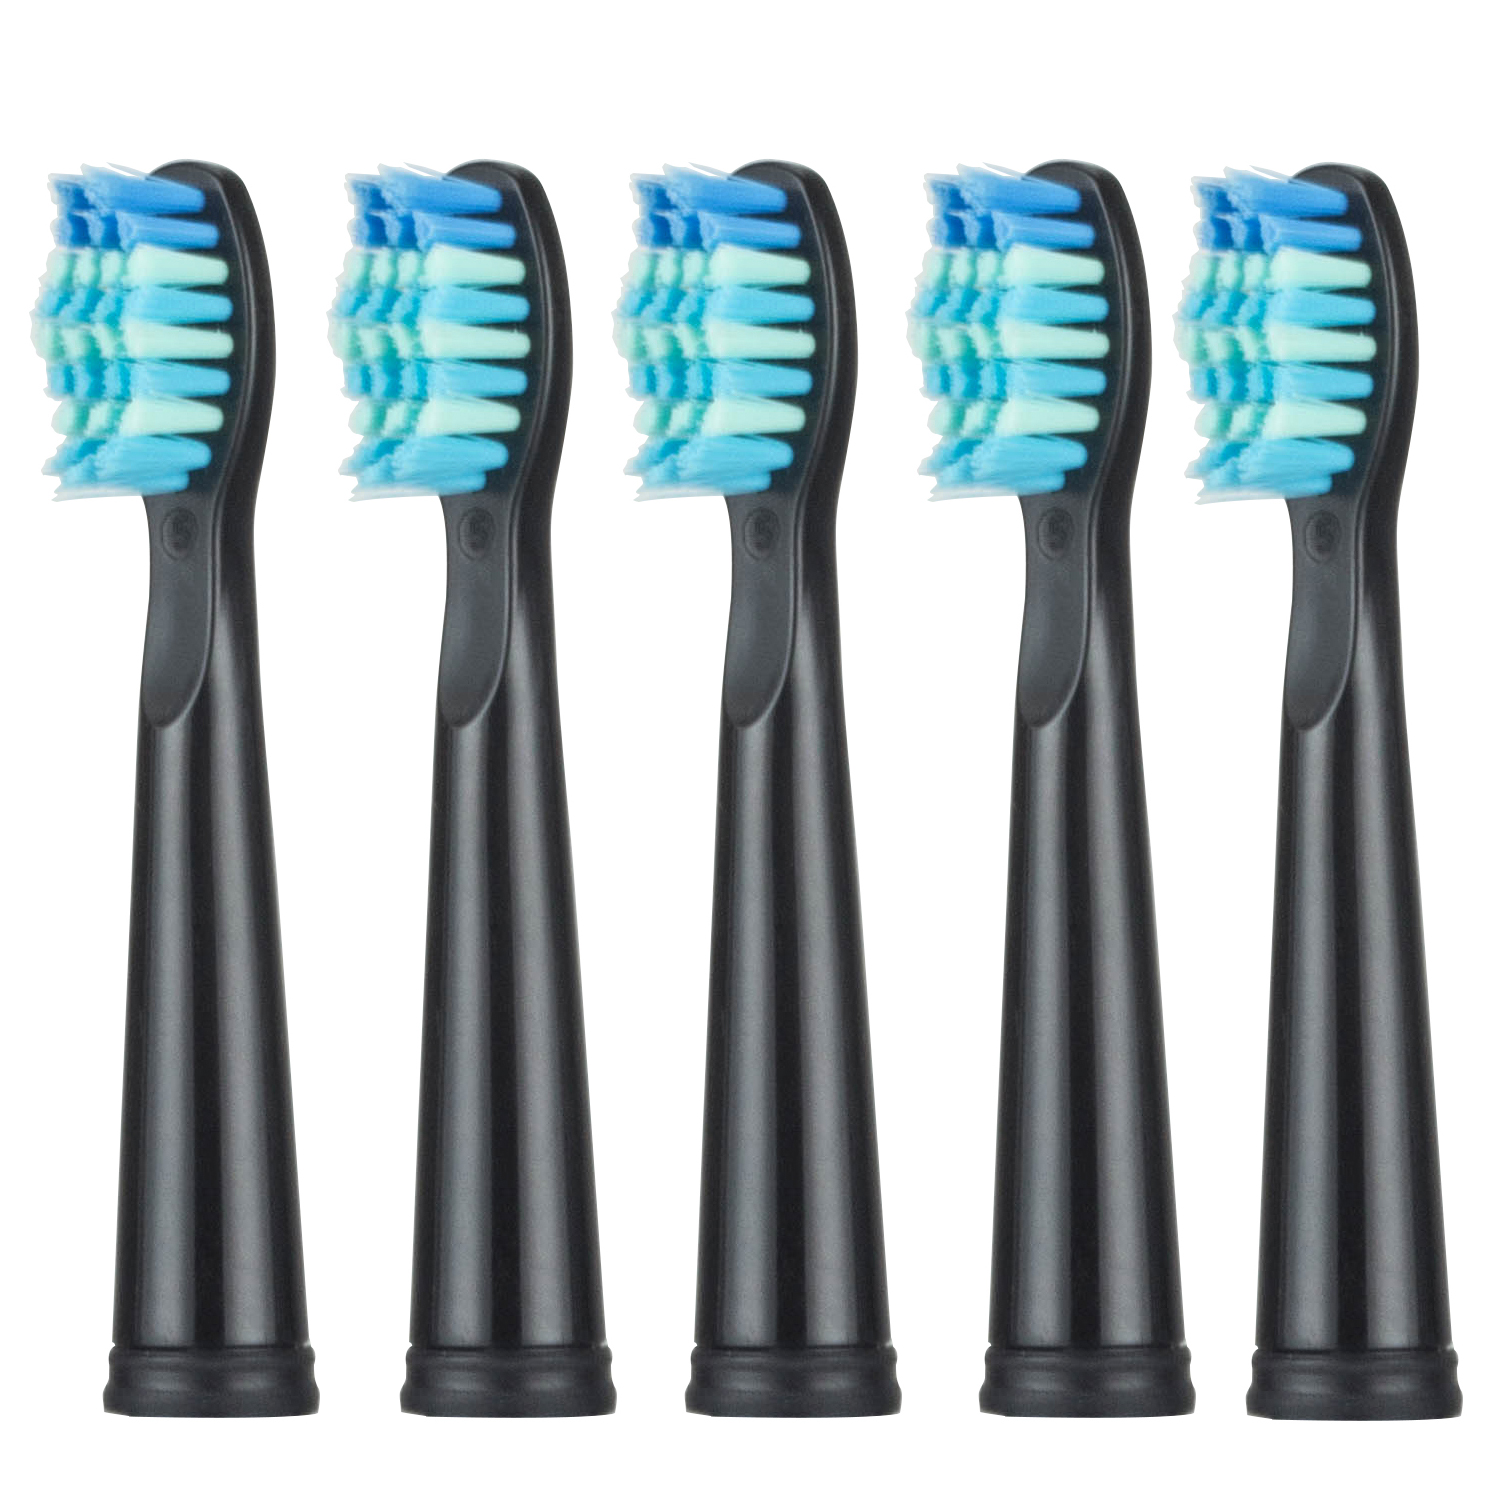 5pcs Replacement Toothbrush heads for Seago Electric Tooth Brush Brand Brush Heads for SG-507 SG-949 SG-917 truevis sg 300